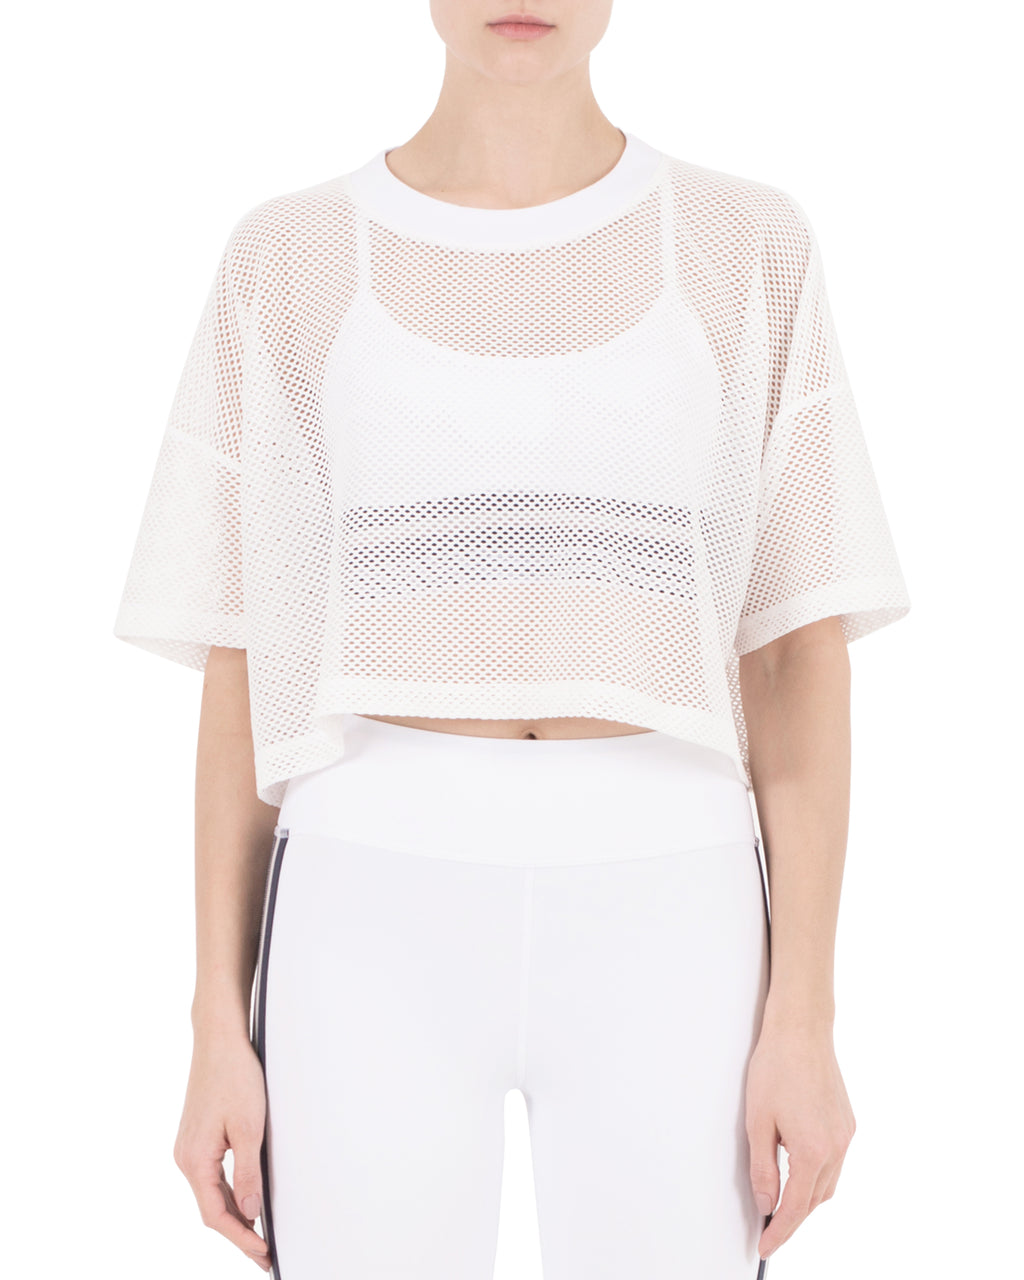 Lissy Top White